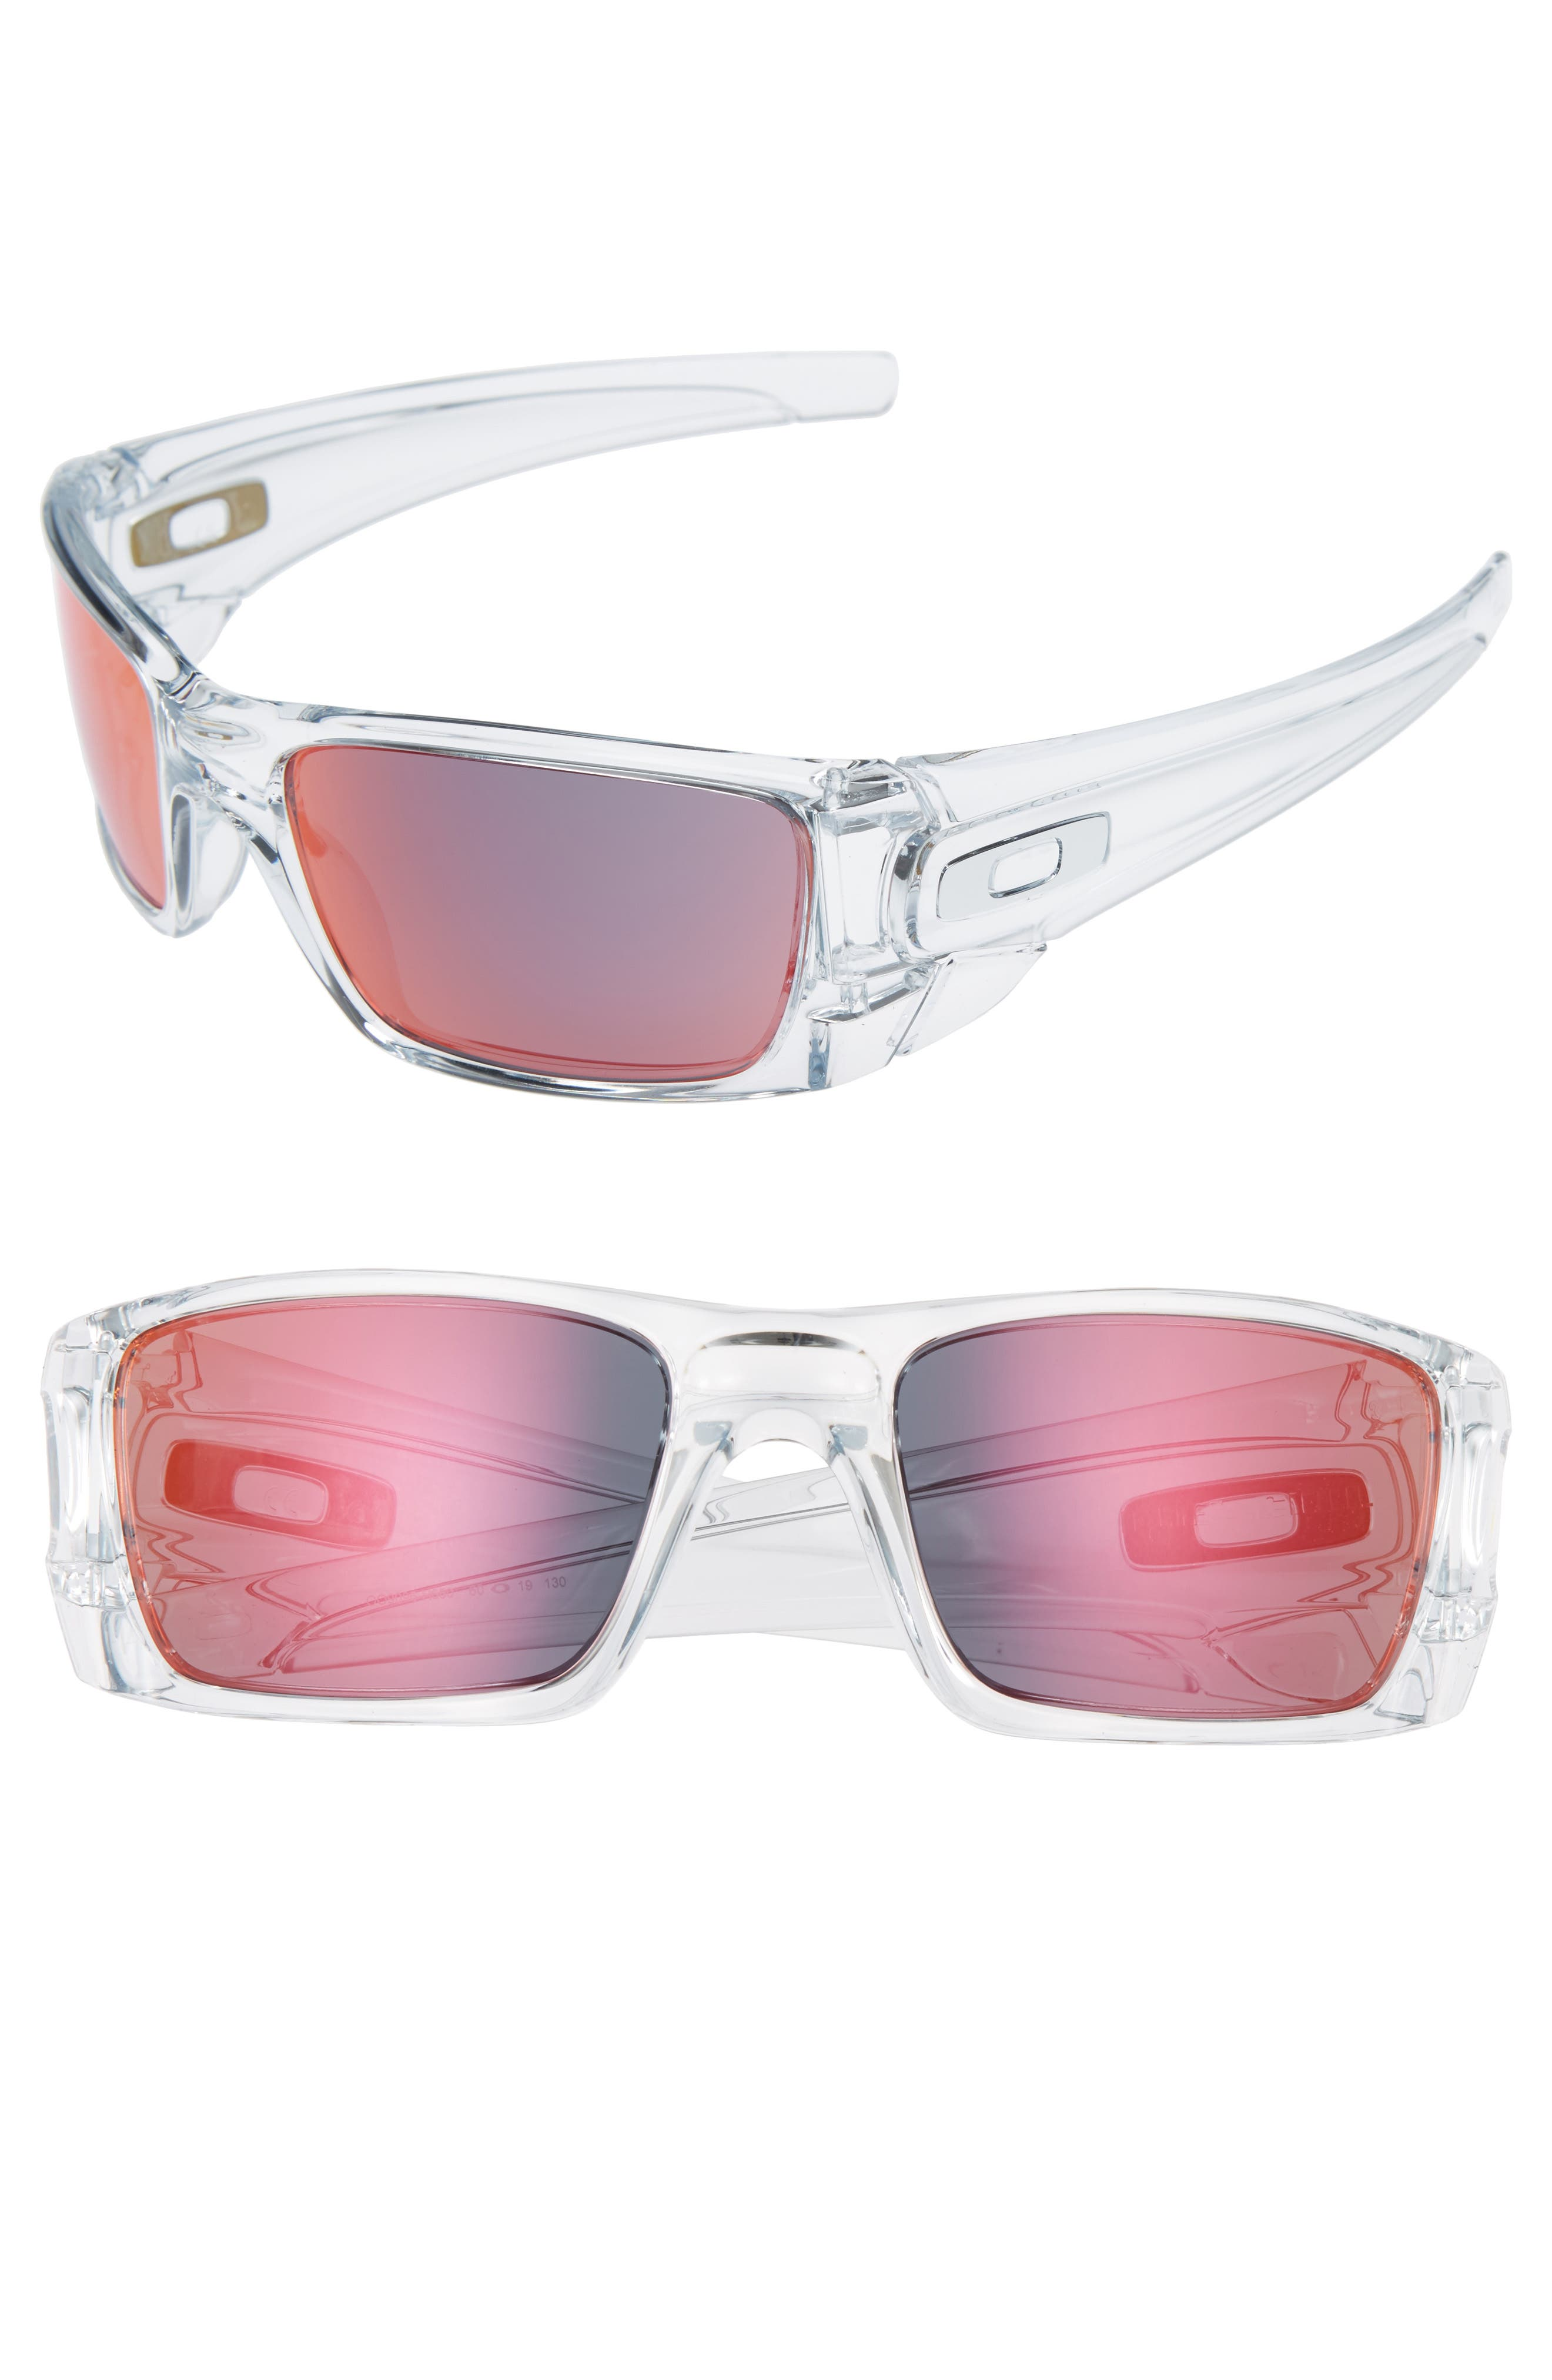 Oakley Fuel Cell 60Mm Sunglasses -